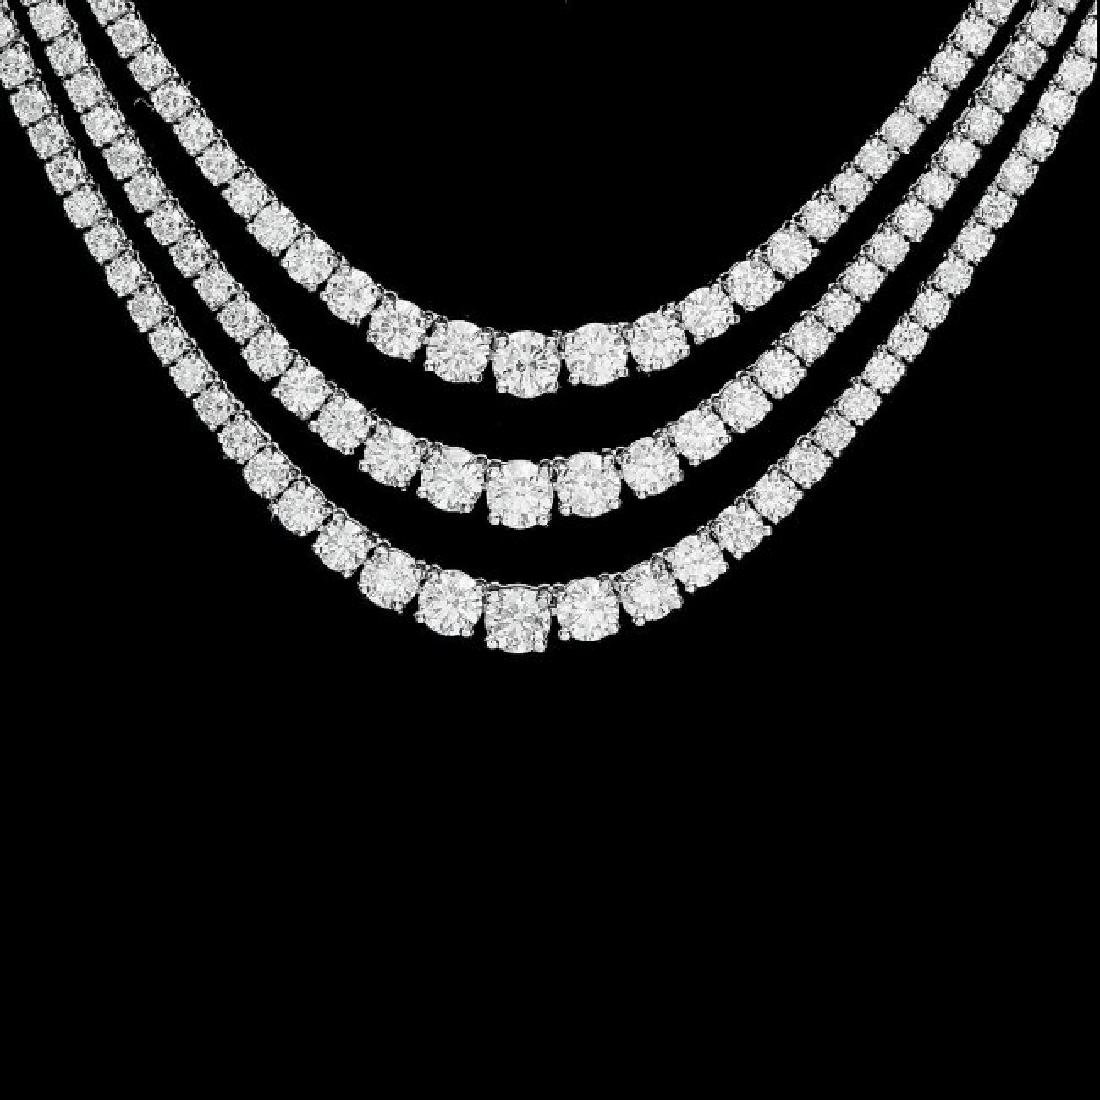 18k White Gold 12.90ct Diamond Necklace - 2